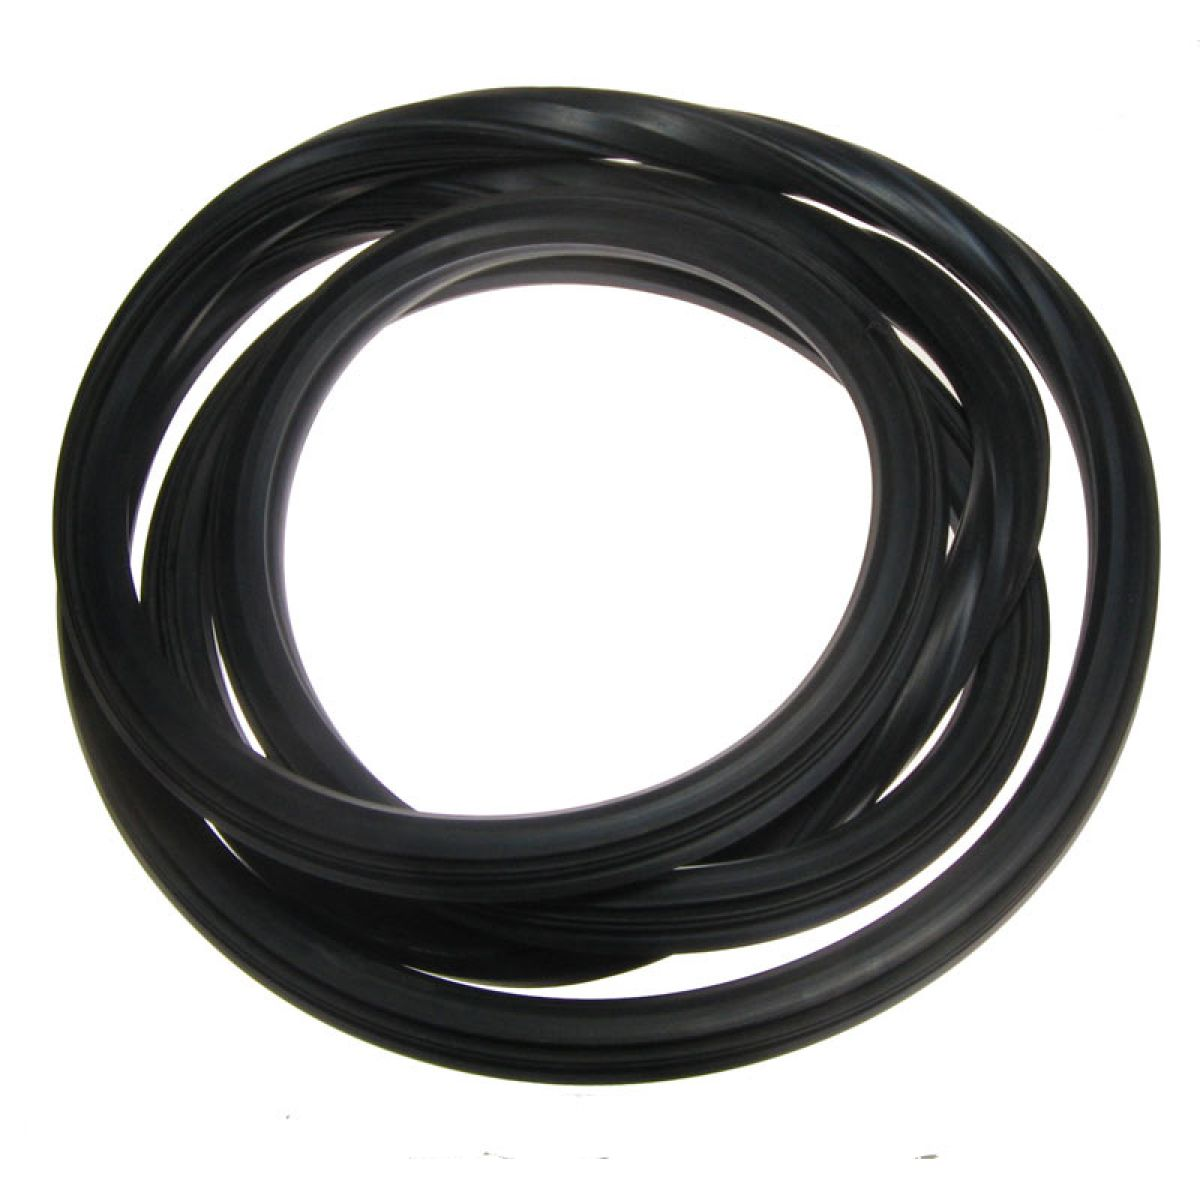 Windshield Glass Weatherstrip Gasket Seal For Jeep Cj5 Cj7 Cj8 Scrambler Wiring Harness